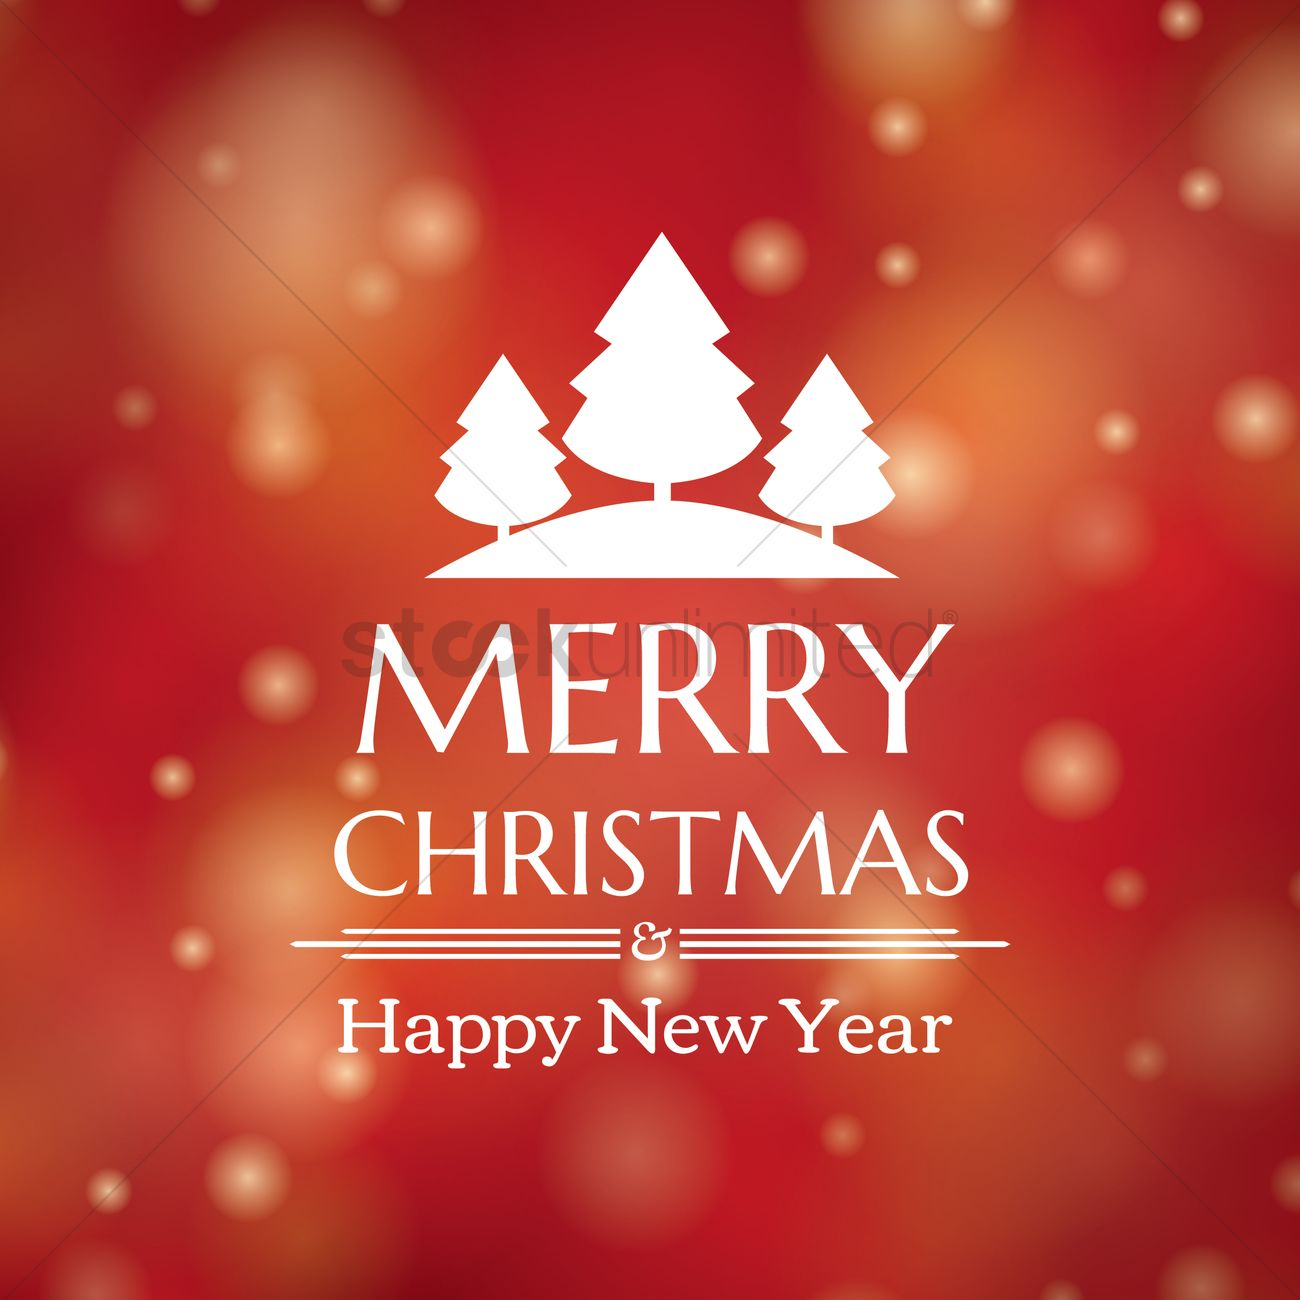 Christmas And New Year Greetings Vector Image 1812116 Stockunlimited